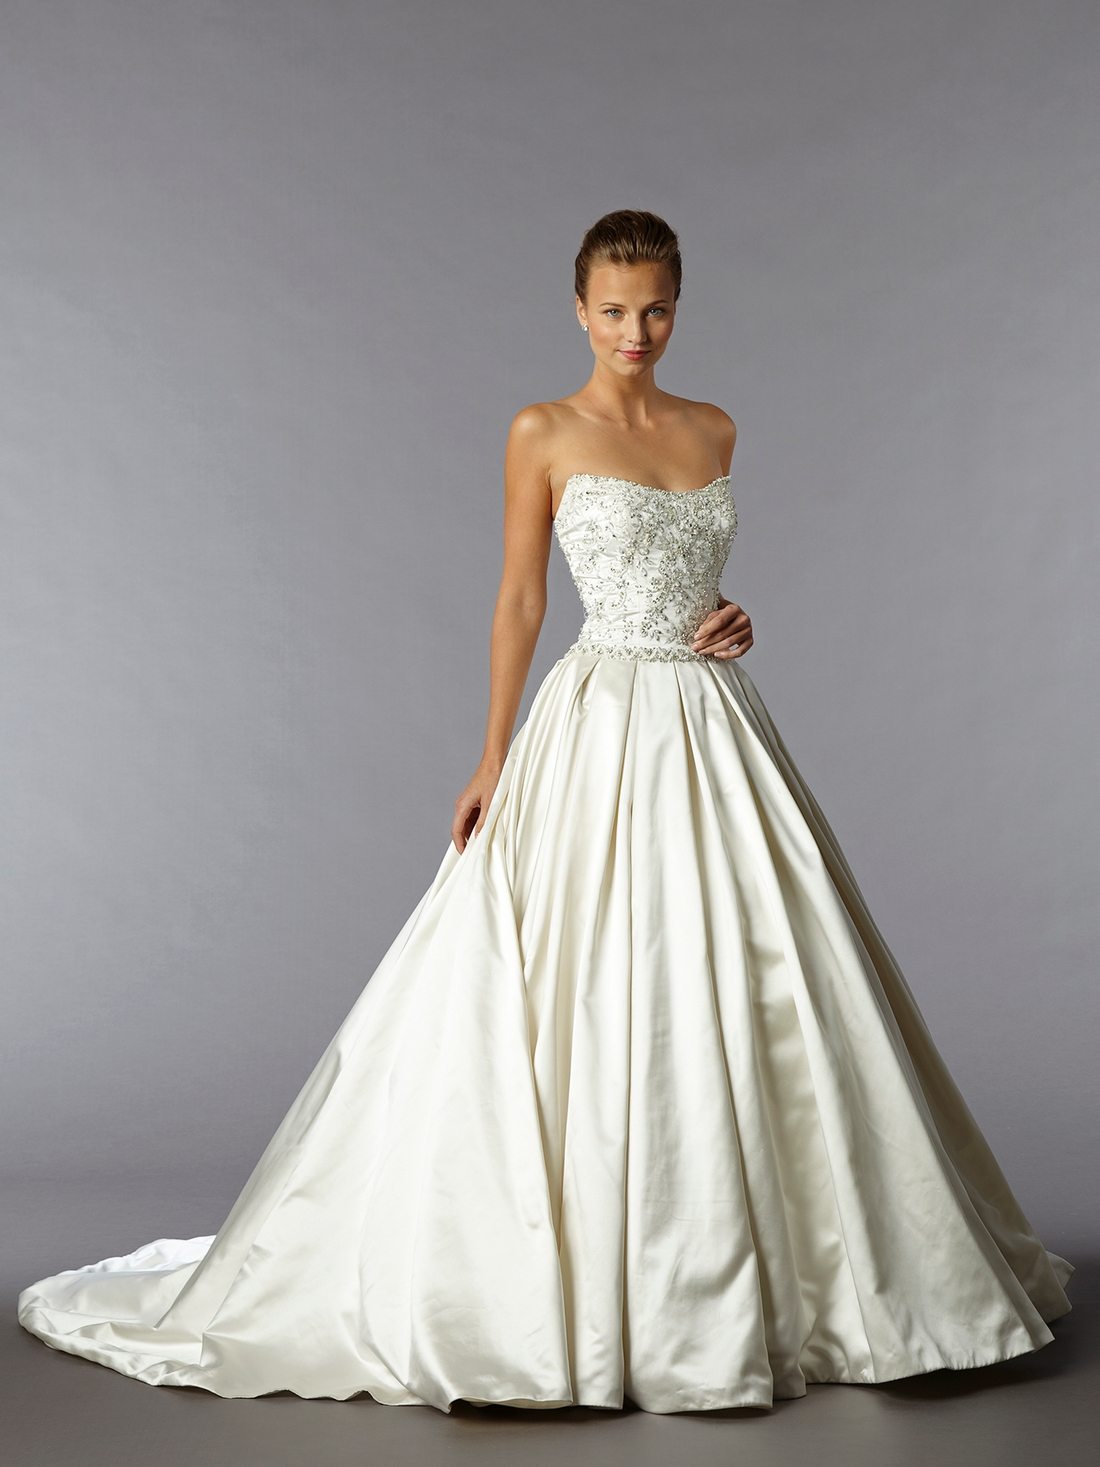 : panina wedding dress designer